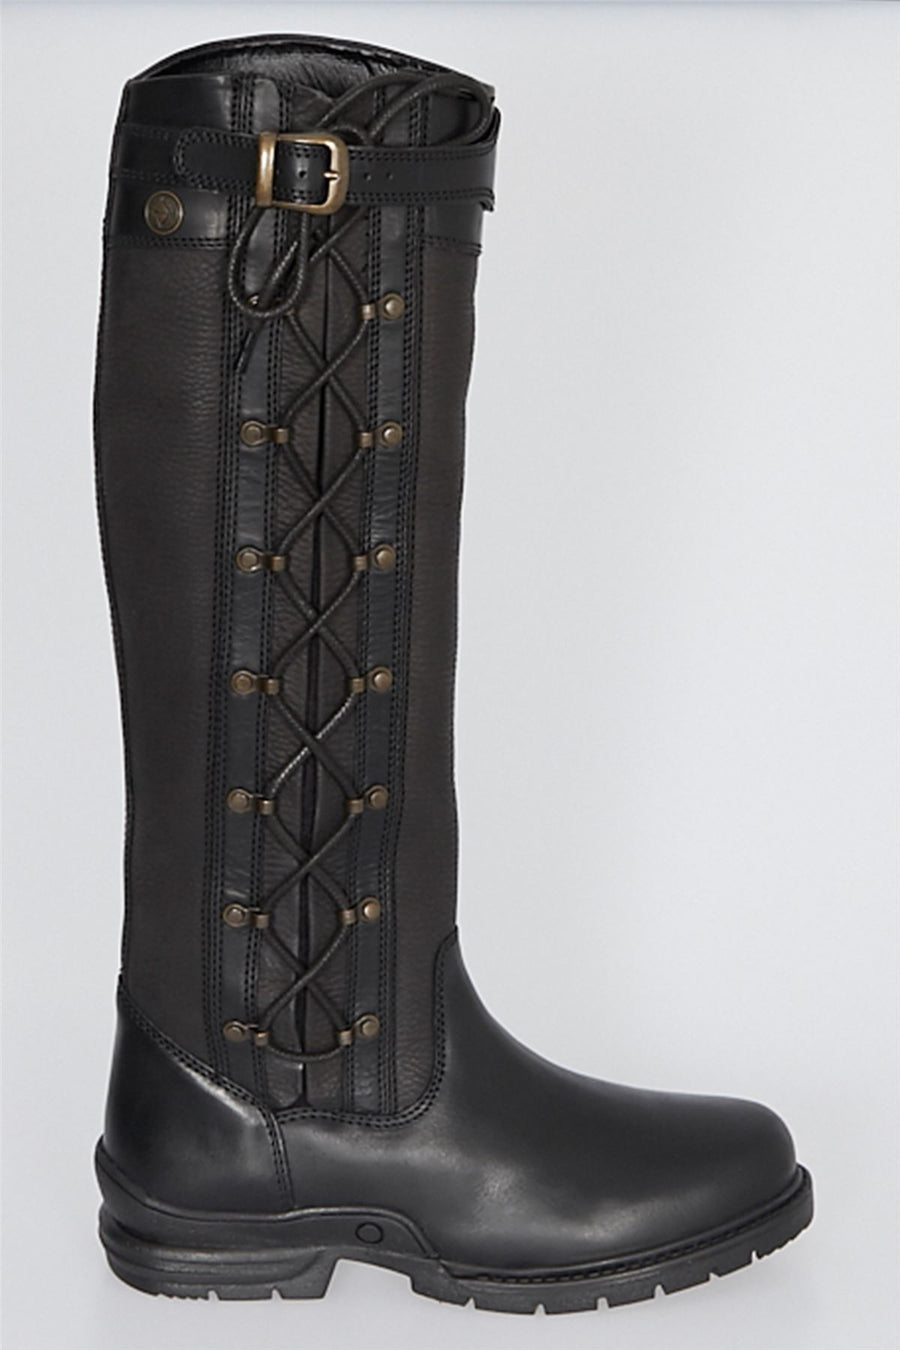 Bow & Arrow Kingston Country Boots BLACK